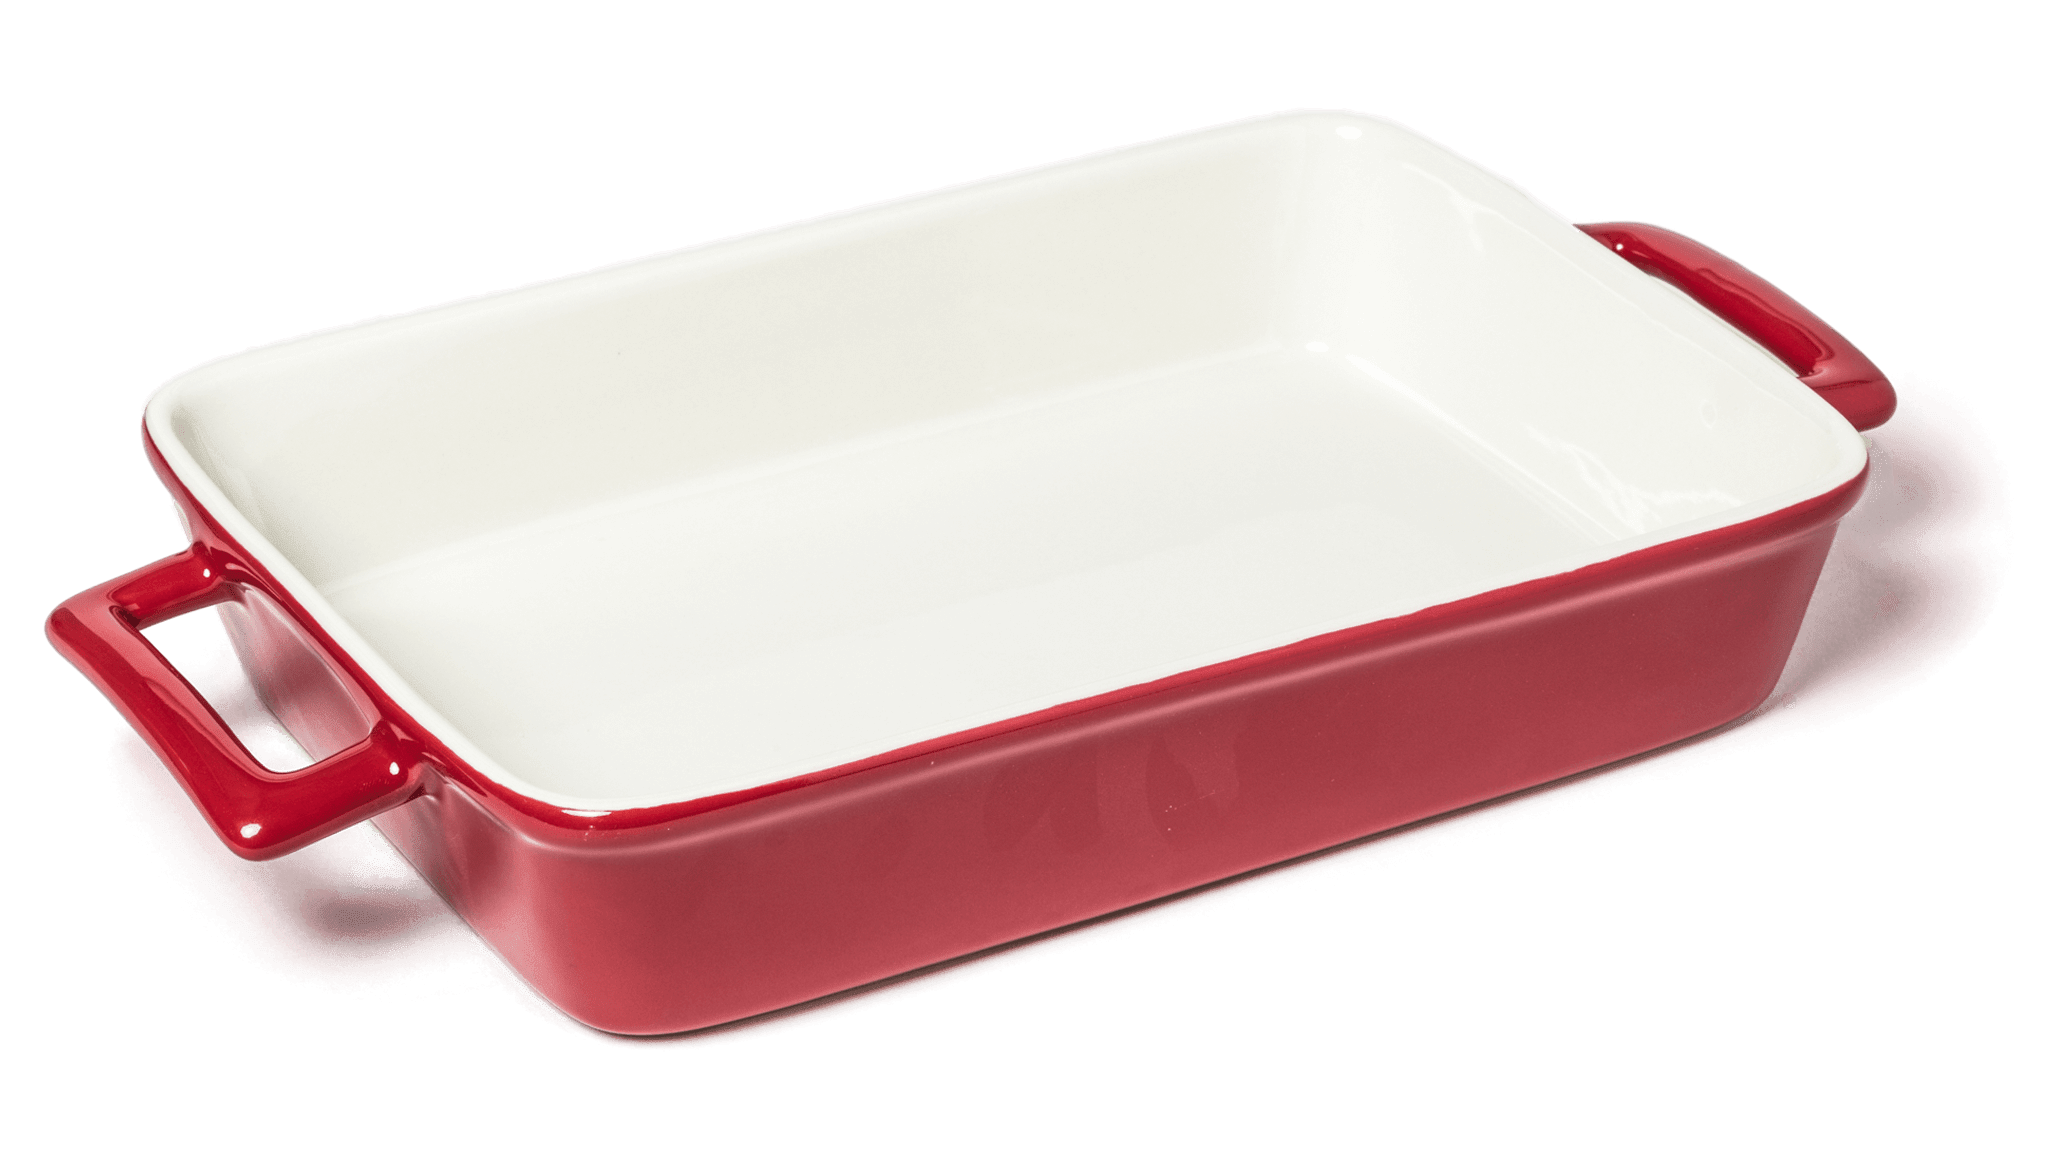 Sil mrs andersons baking lasagna pan with handle twpomg